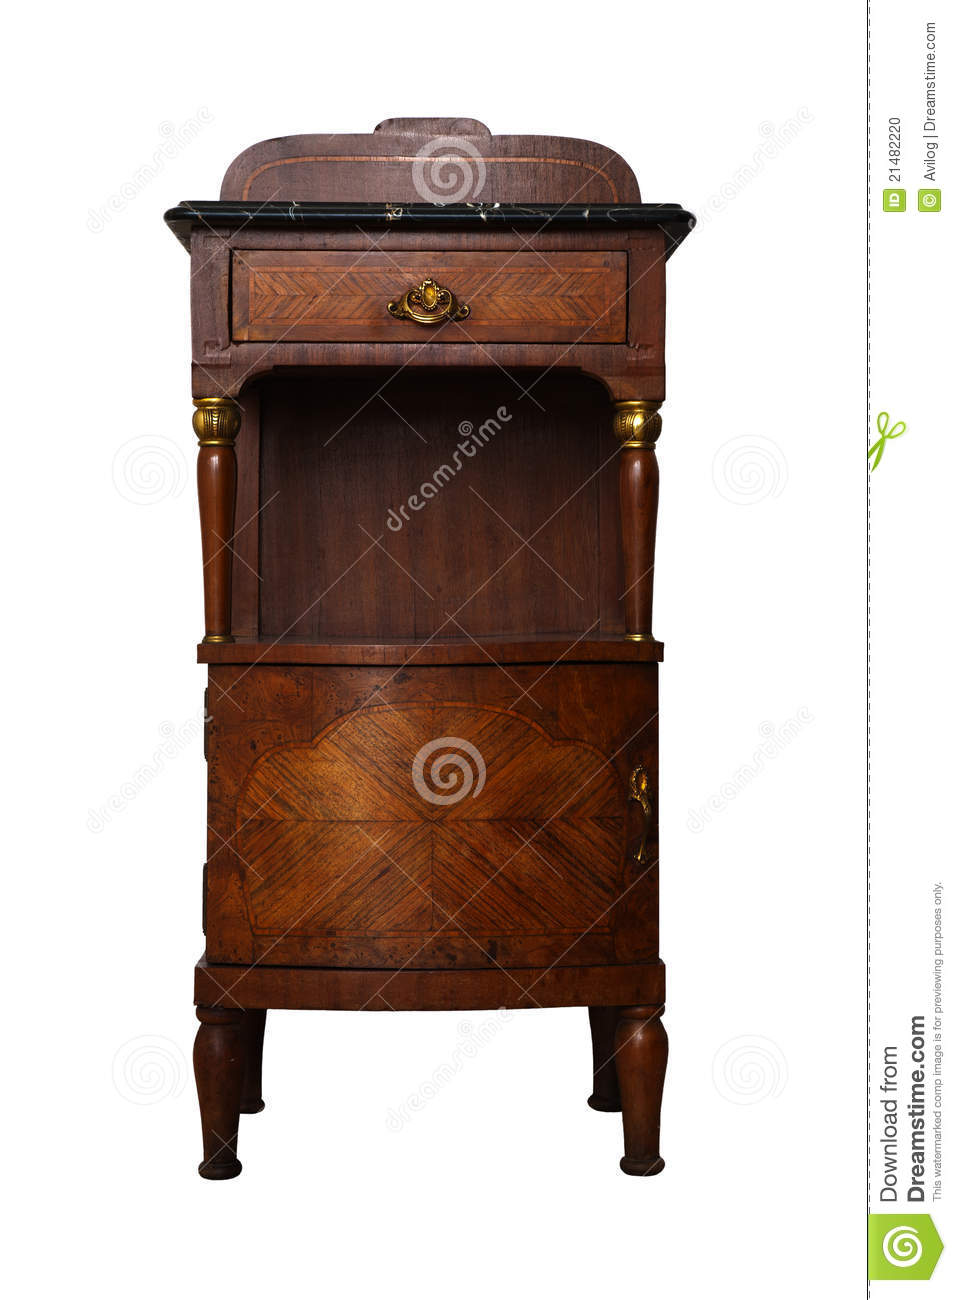 table de chevet antique photo stock image 21482220. Black Bedroom Furniture Sets. Home Design Ideas